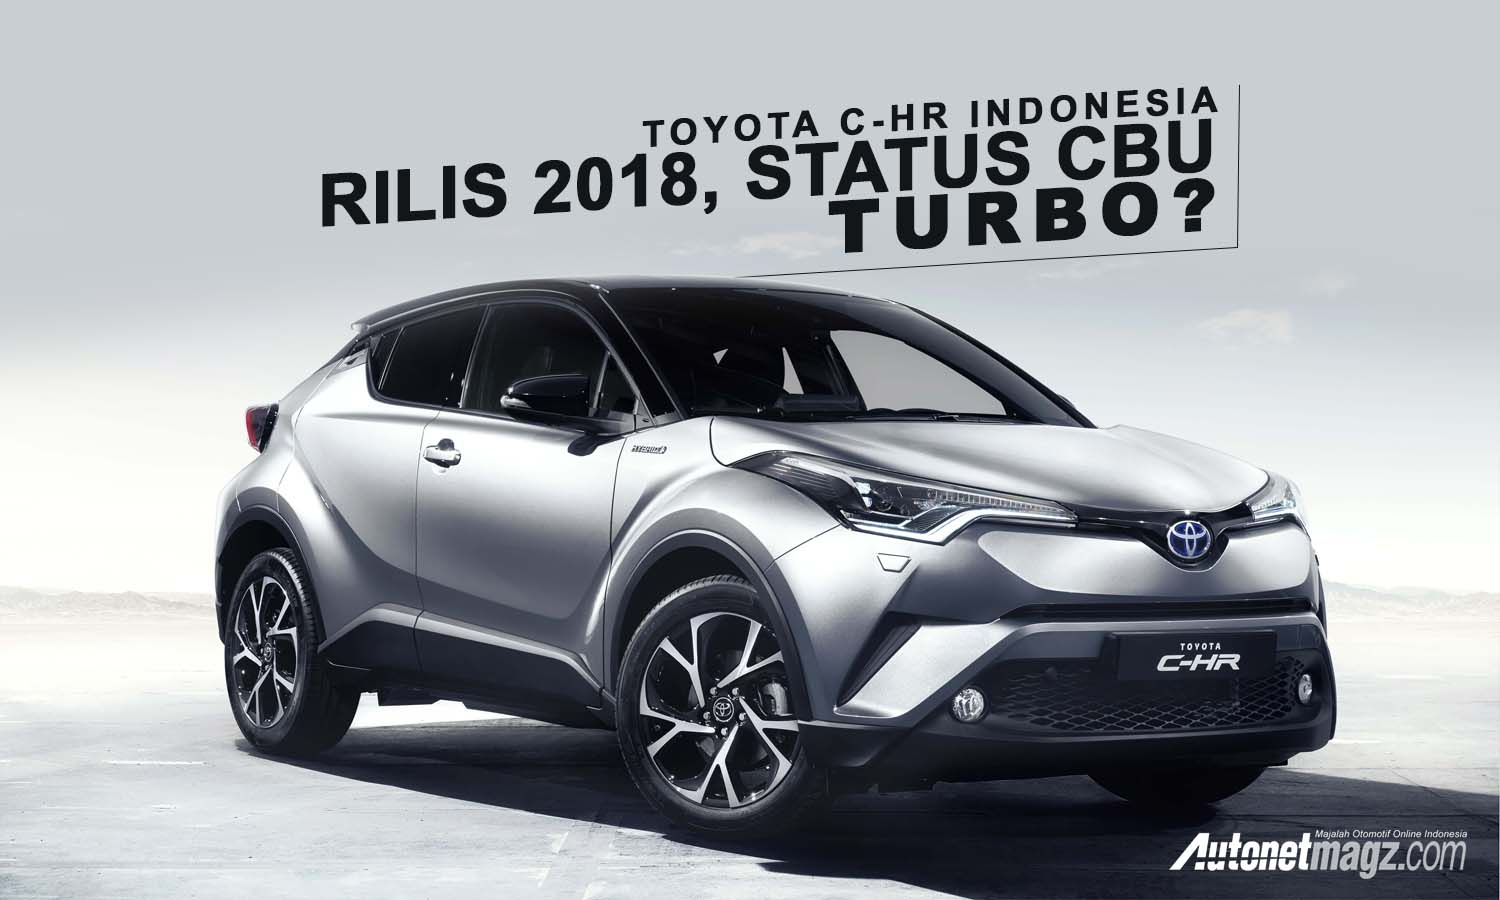 toyota chr baru with Cover Chr Turbo on Review Nissan Grand Livina 2018 Aid149 additionally Perkiraan Harga Toyota Chr Di Indonesia moreover Honda Hrv Estimated Price Malaysia together with Umw Toyota Hikes Prices From January 1 2016 All Models In Malaysia Affected Up By As Much As Rm9 6k besides 45682.